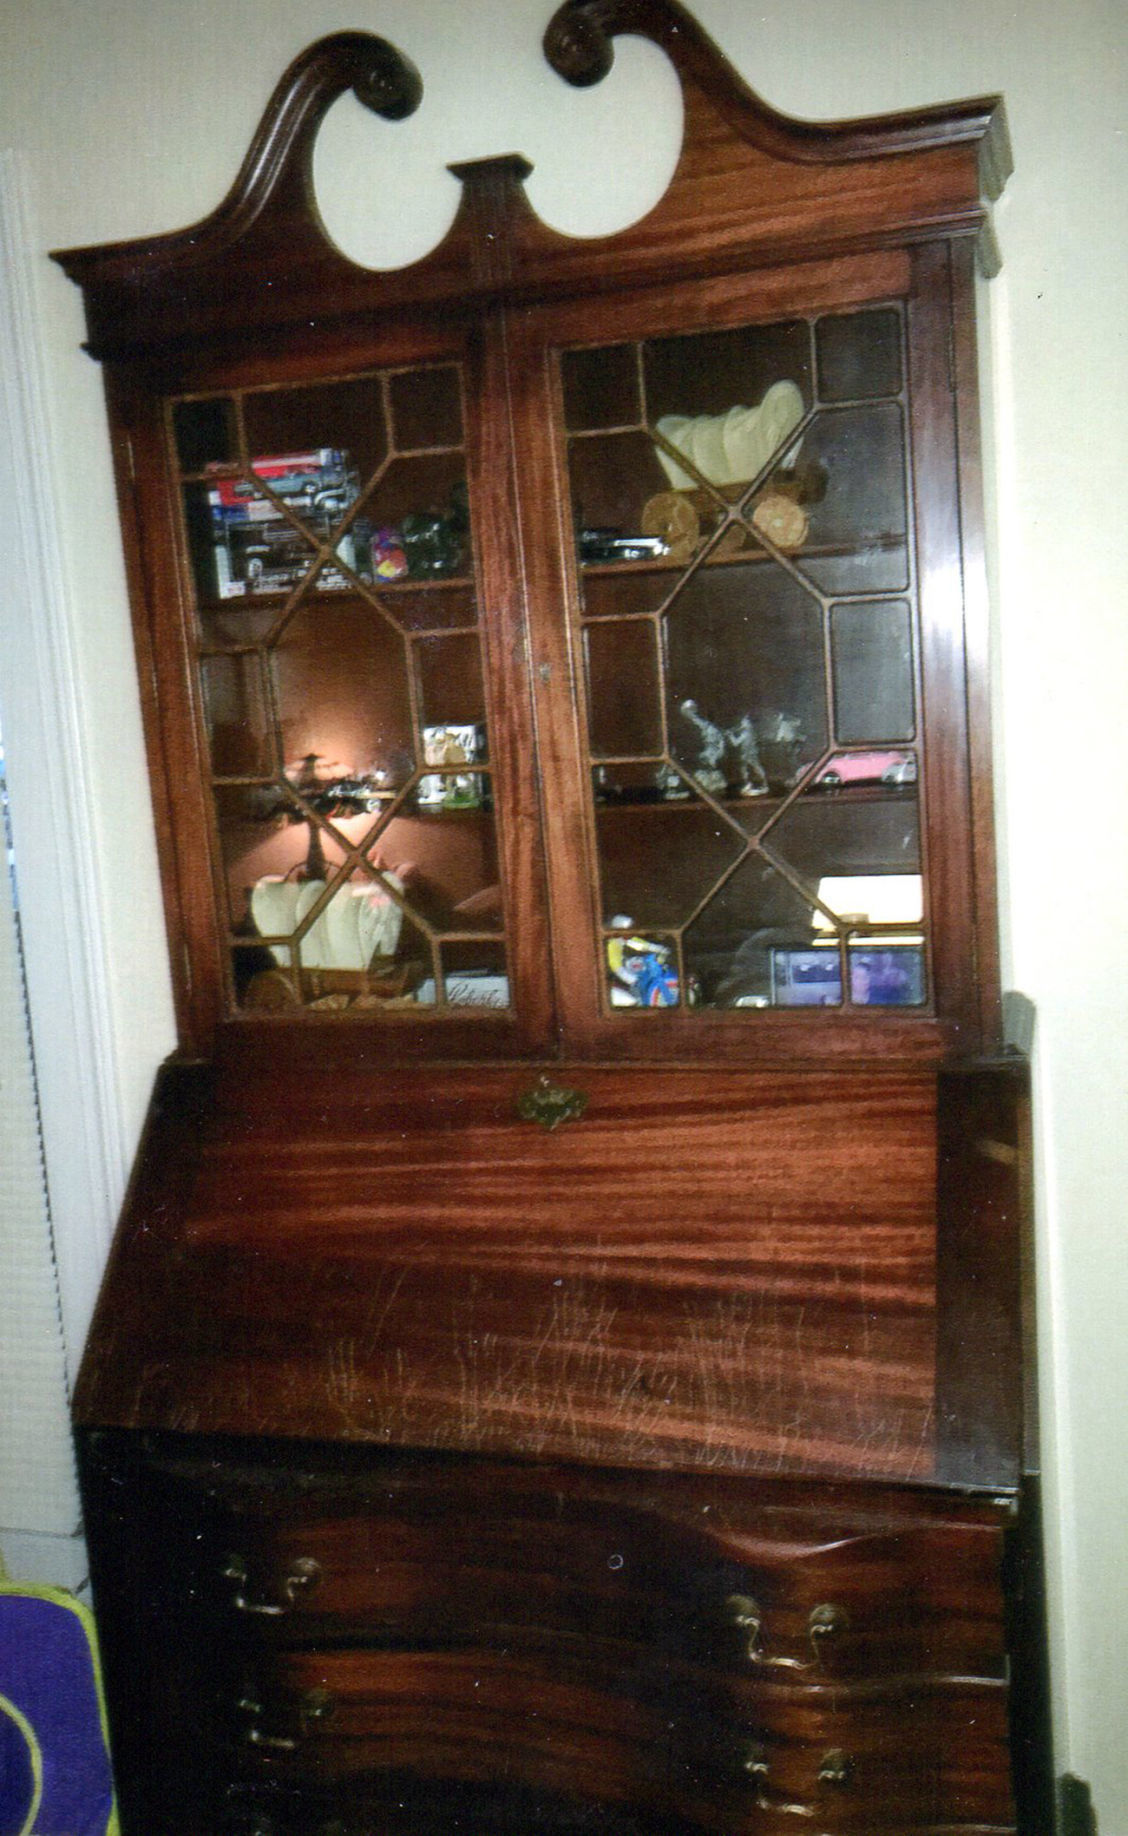 Bookcase likely made around 1940